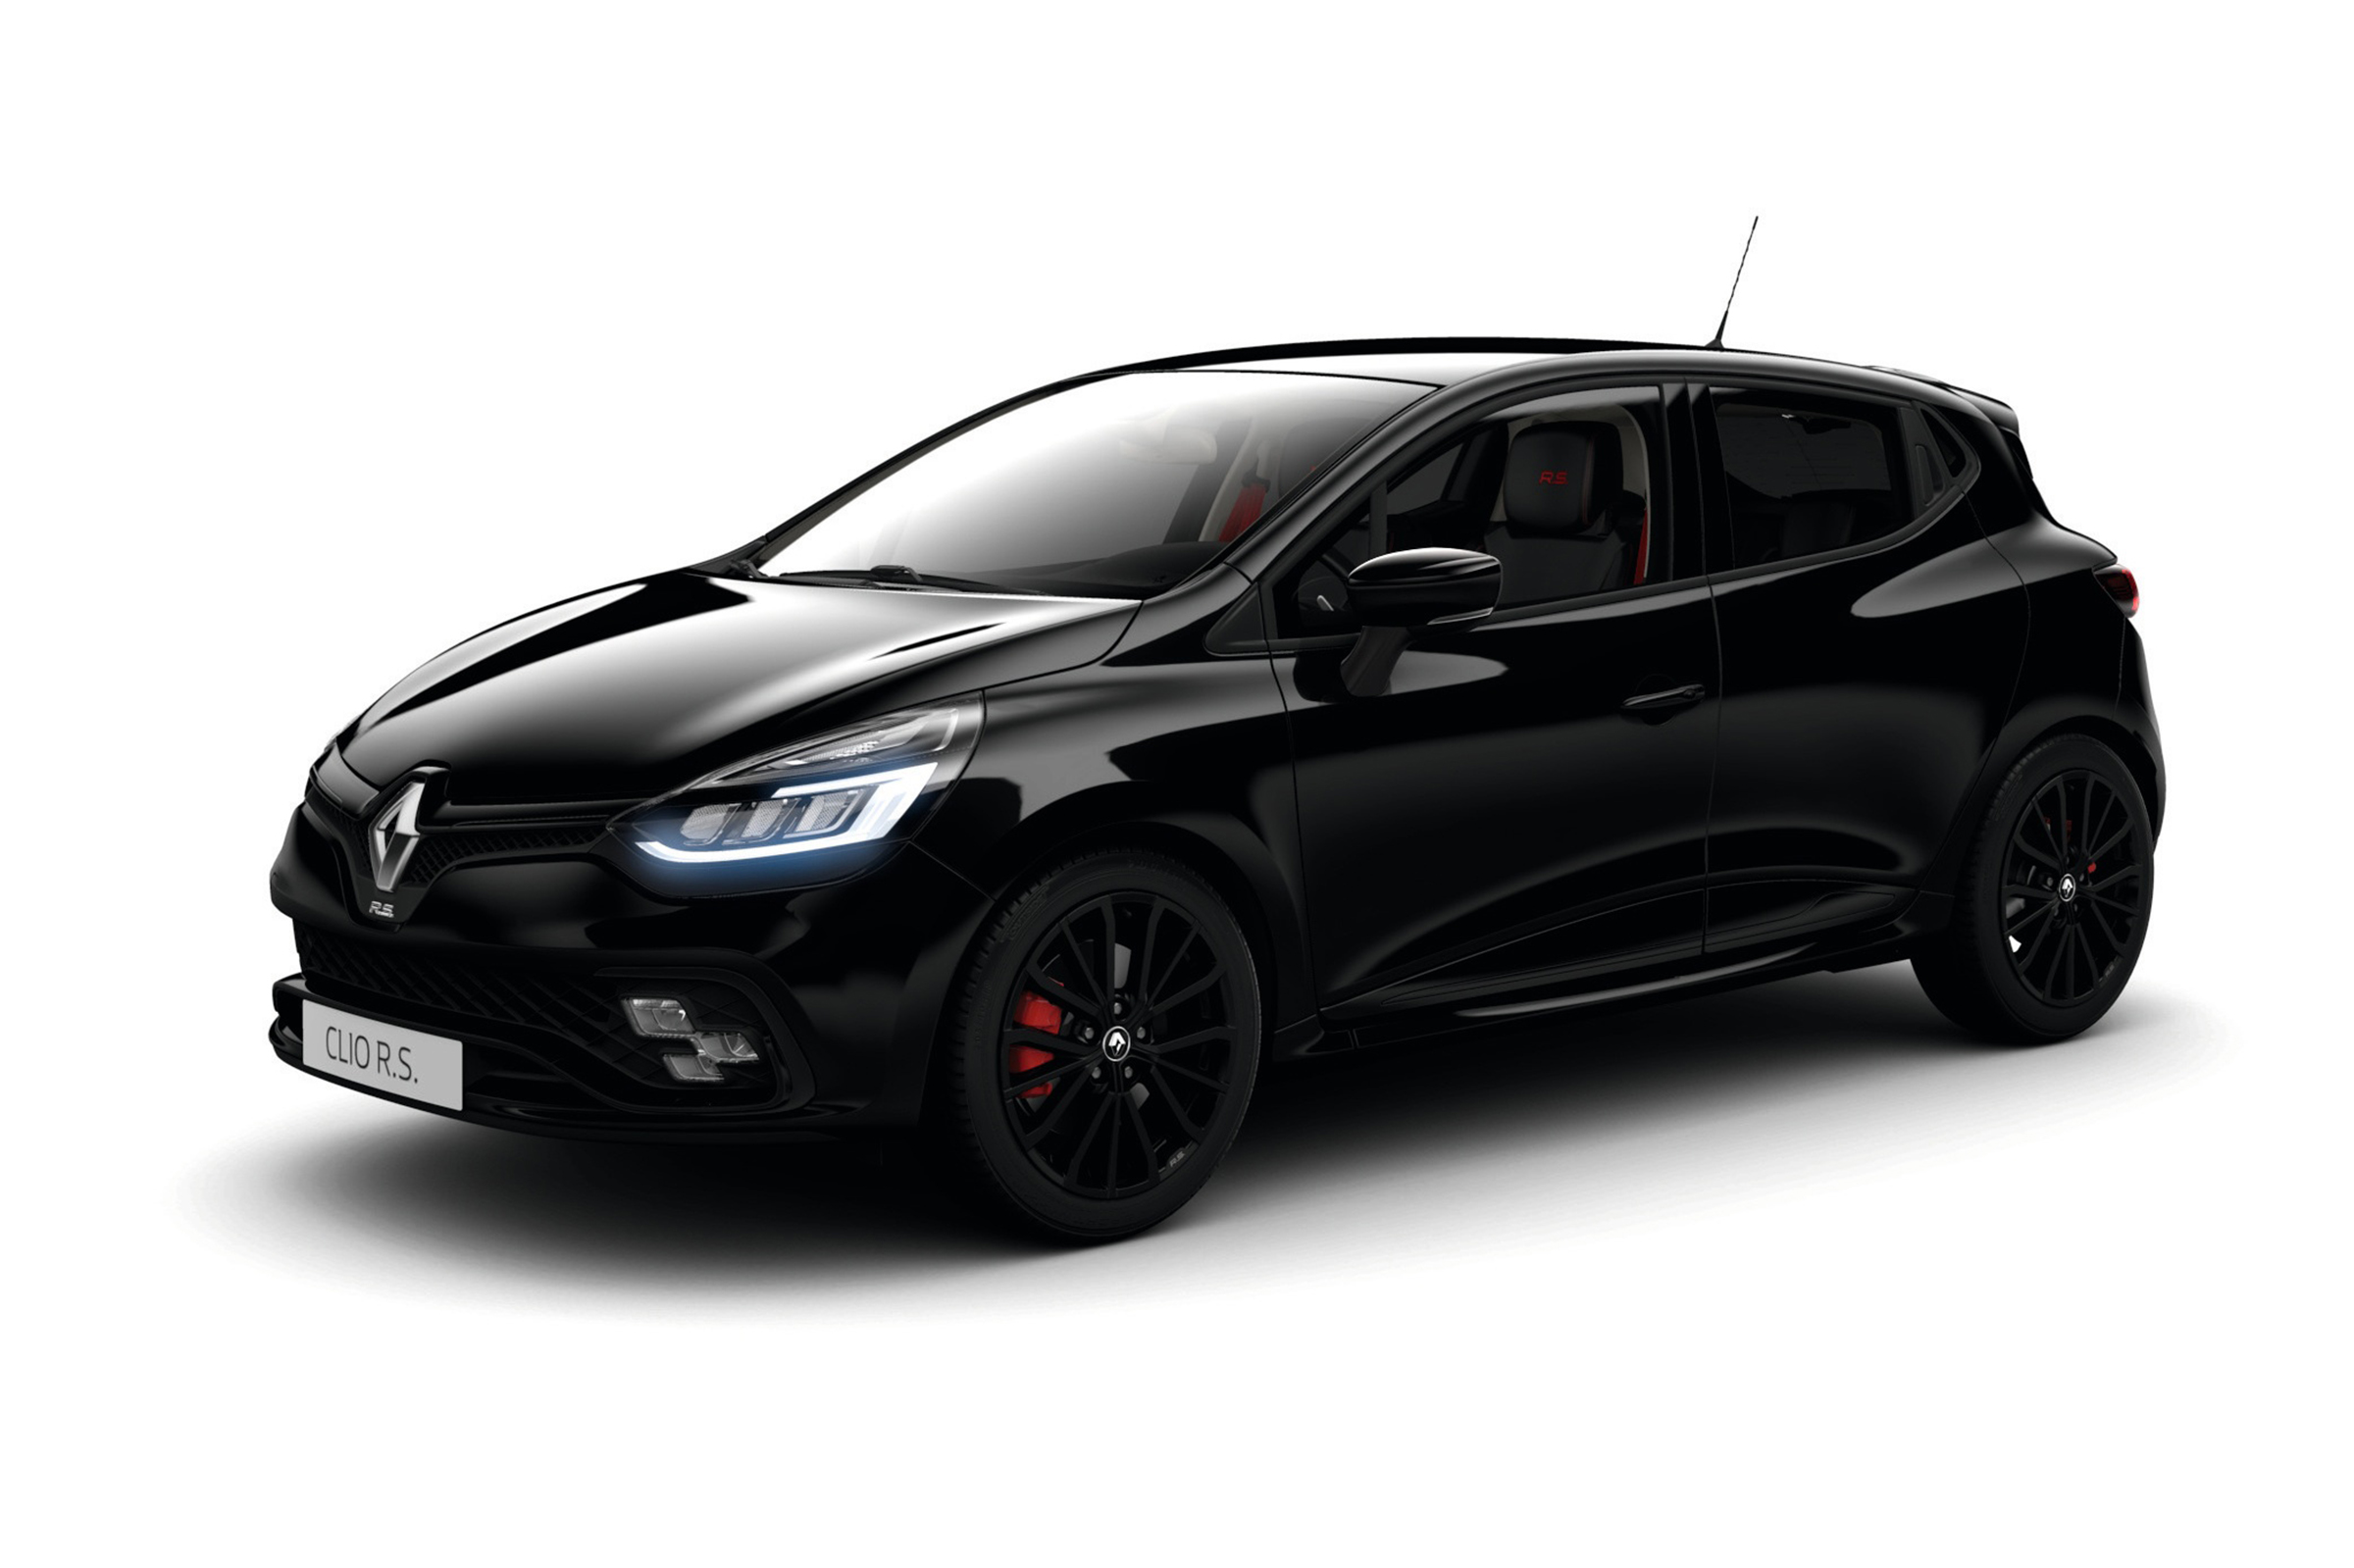 Black Edition Adds Subtle Style To Renault Clio Rs Carbuyer